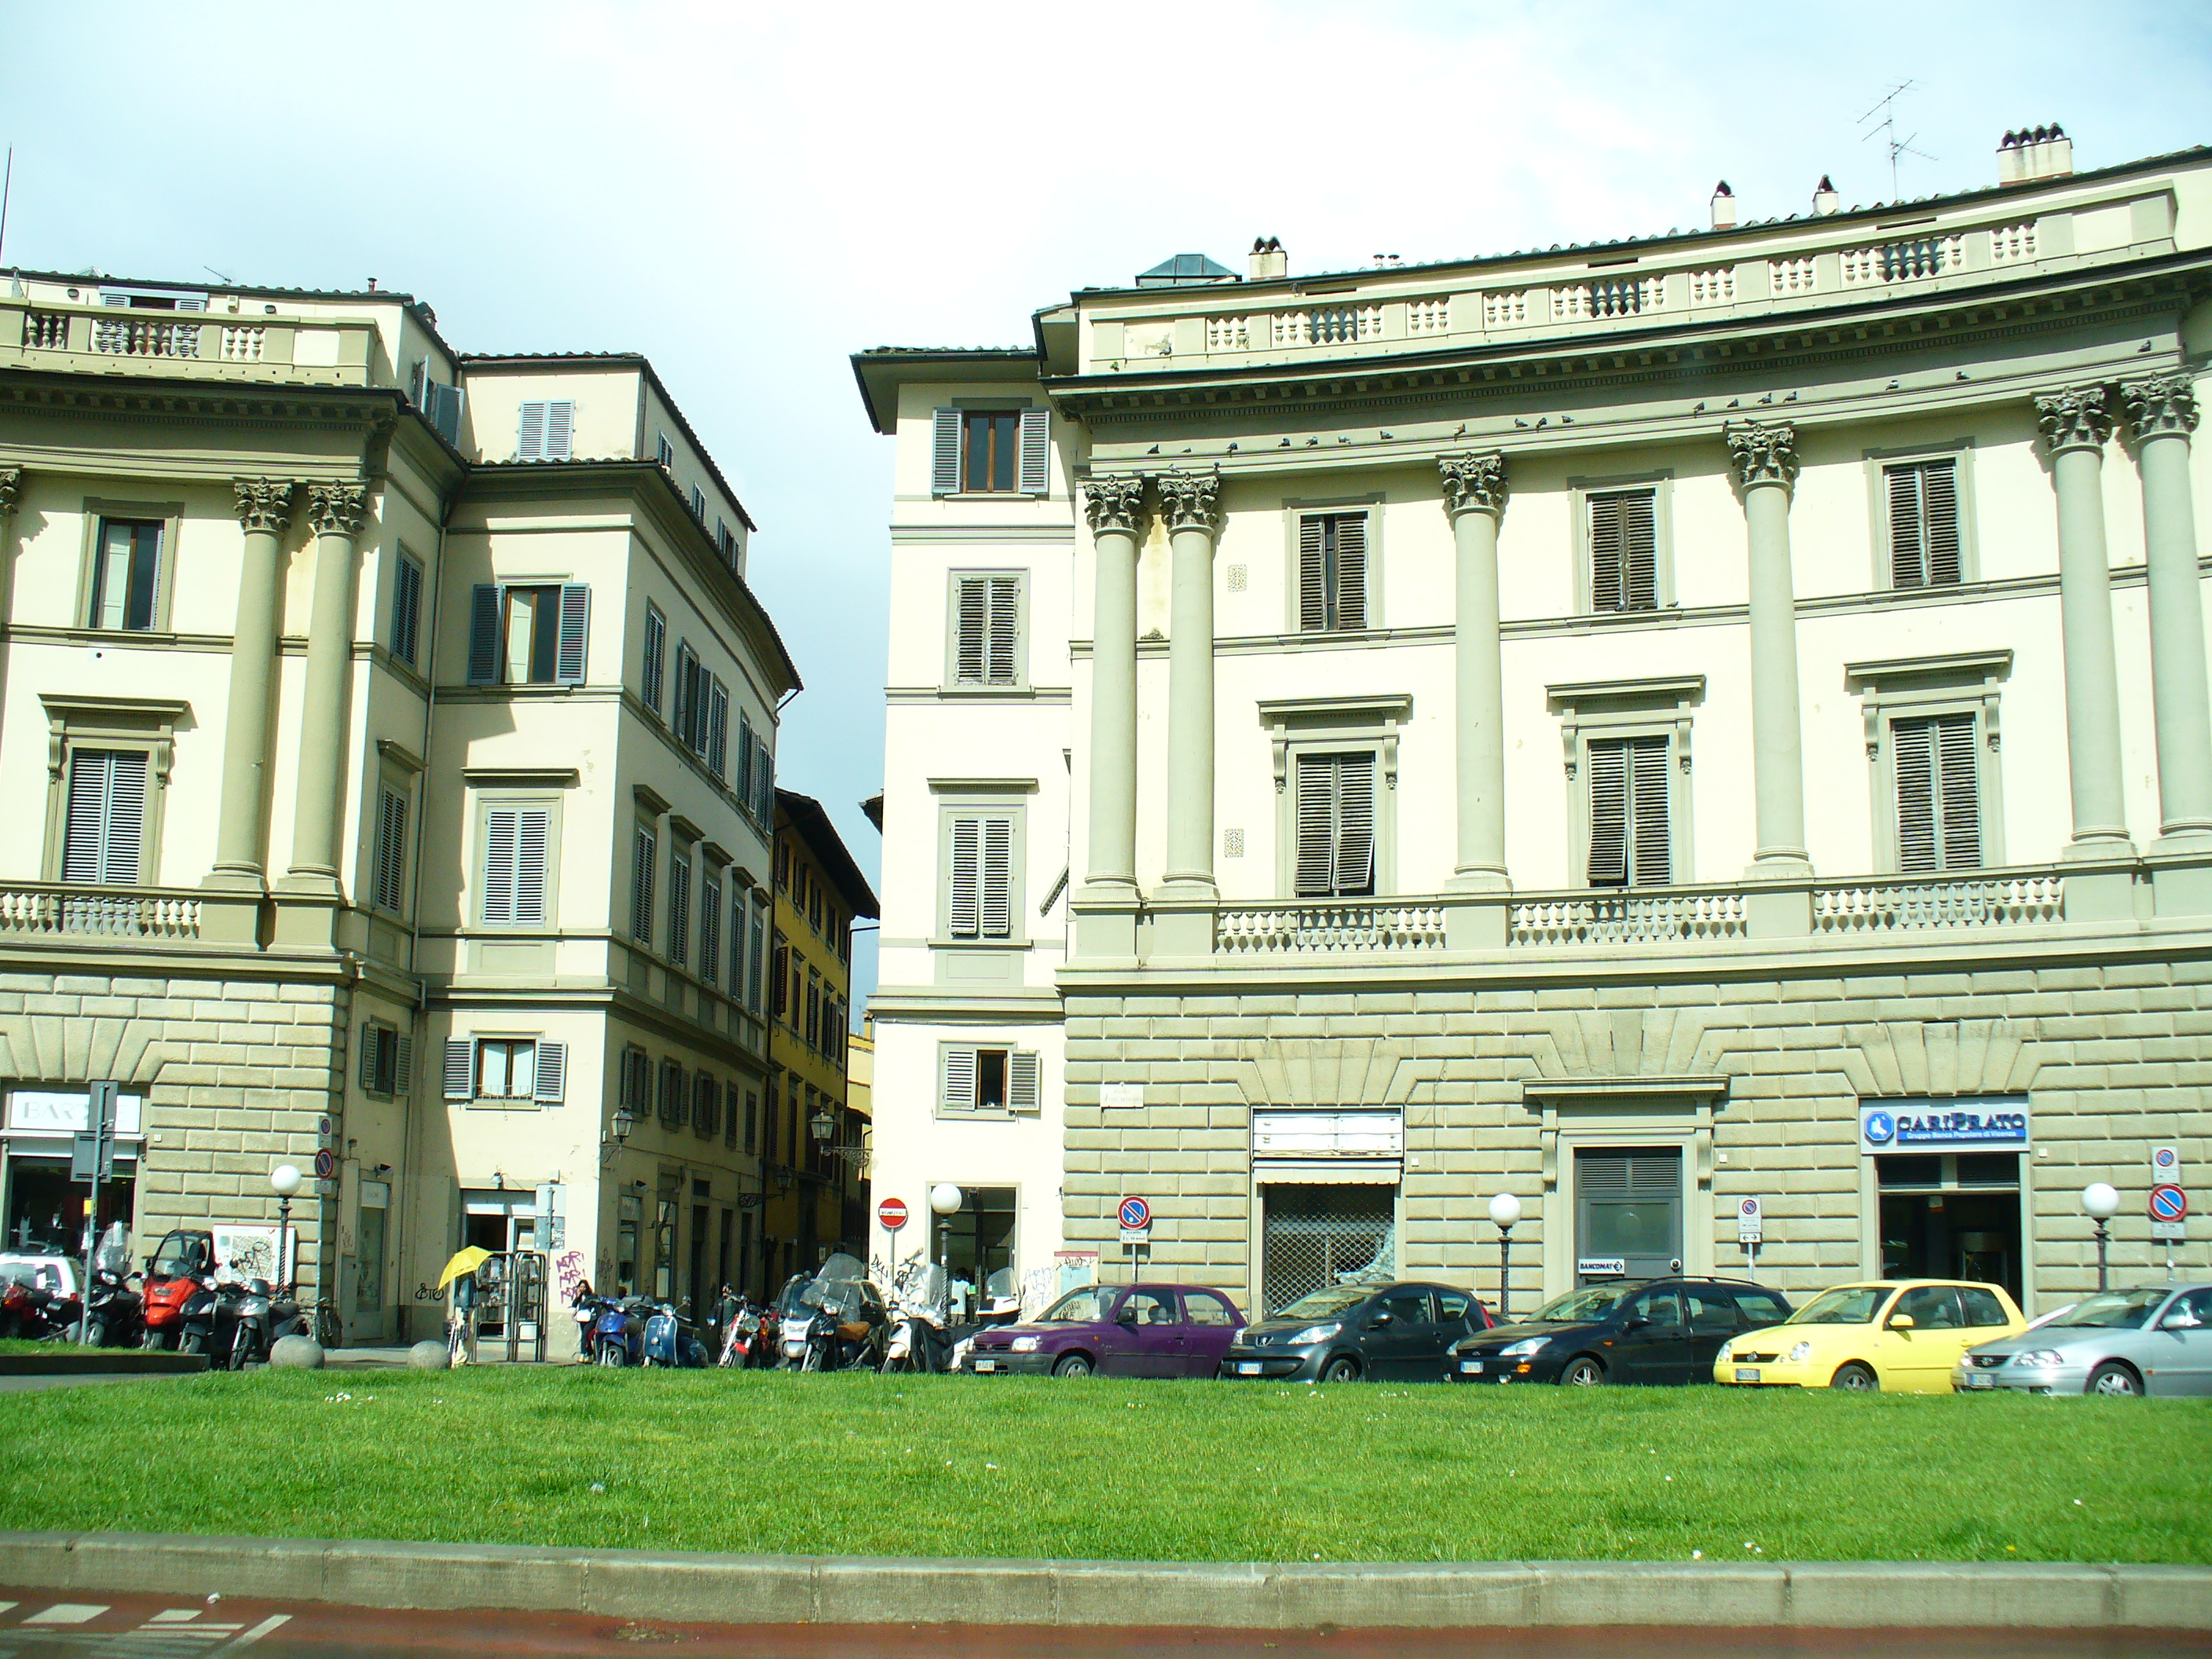 Pin synagogue in florence italy on pinterest for Piazza beccaria